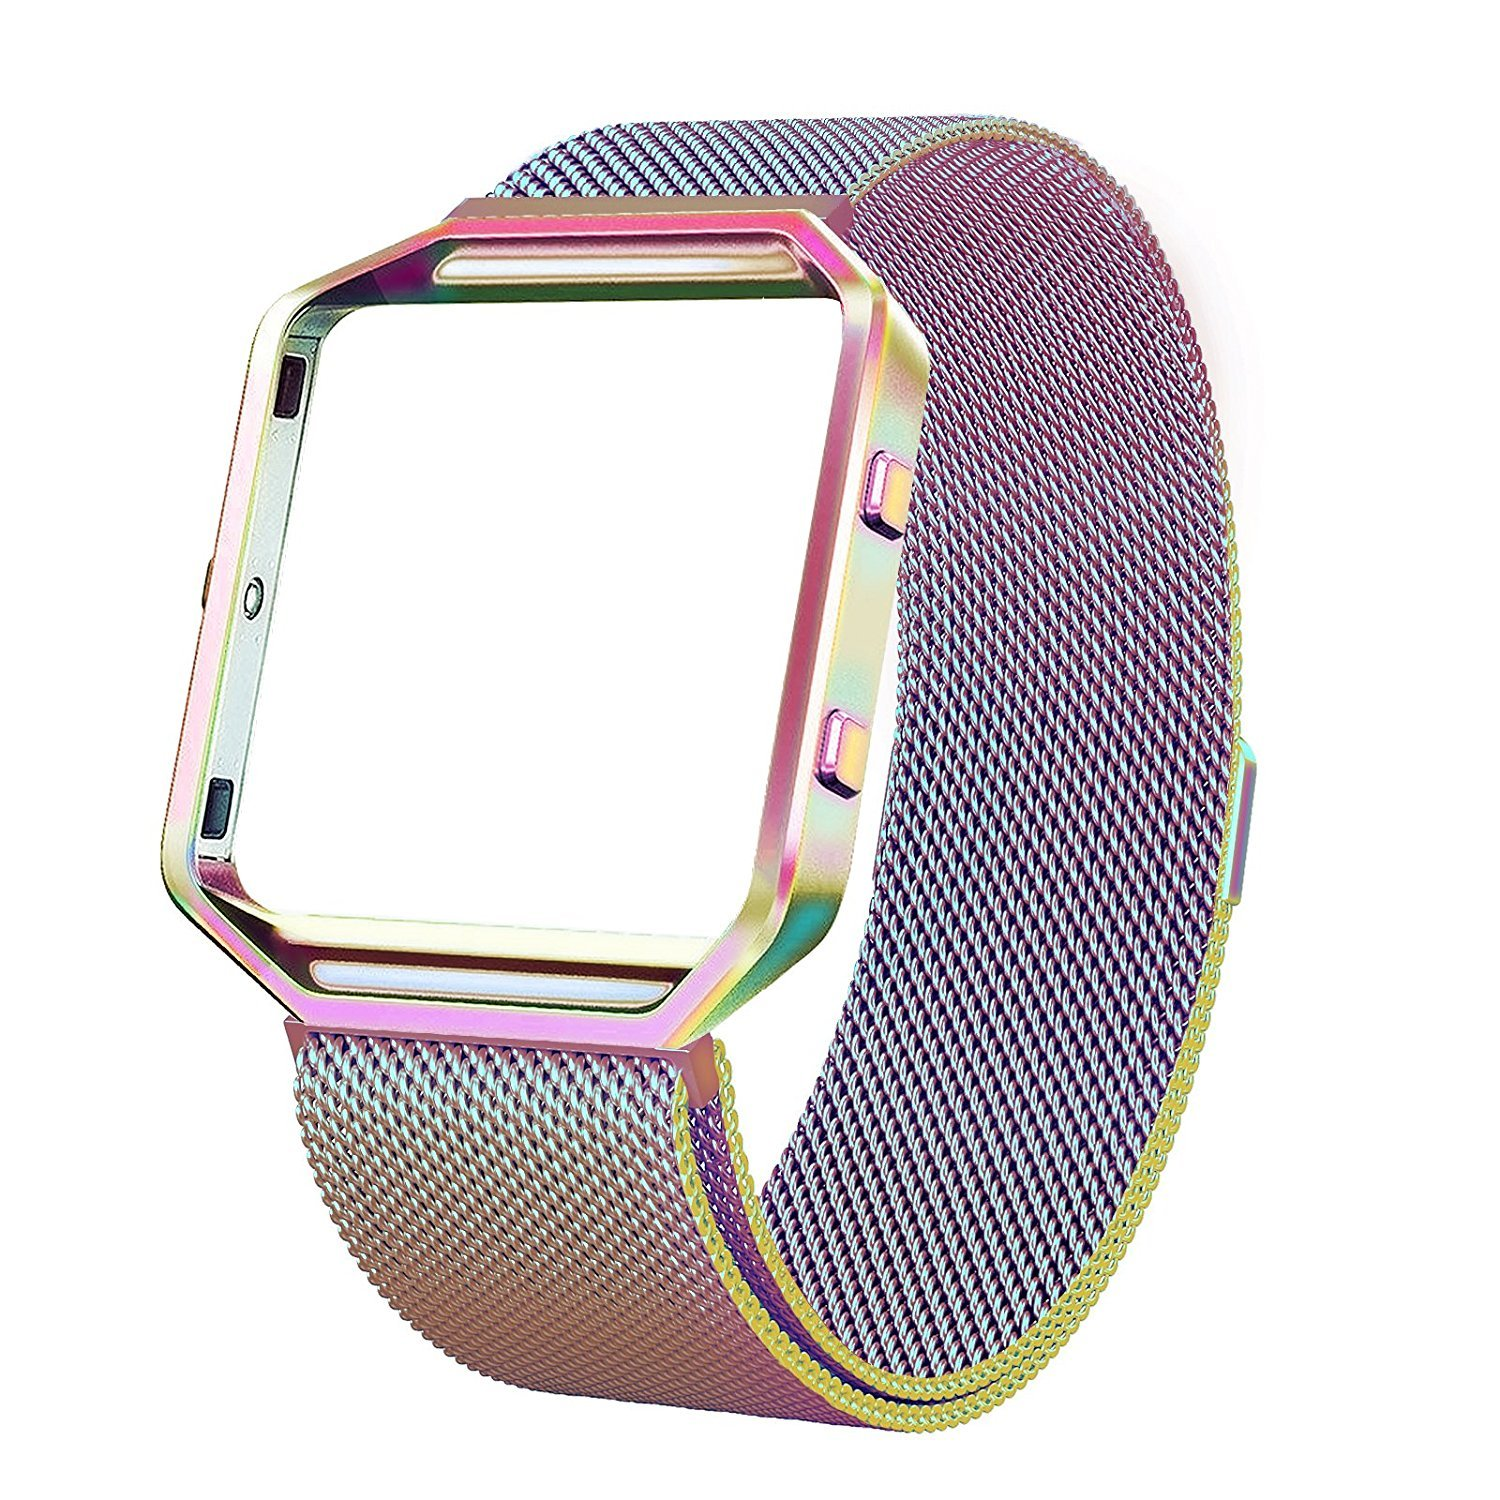 Colorful Black Stainless Steel Replacement Adjustable Band with Metal Frame for Fitbit Blaze Women Men Champagne Gold Rose Gold Silver Andyou Fitbit Blaze Band with Frame